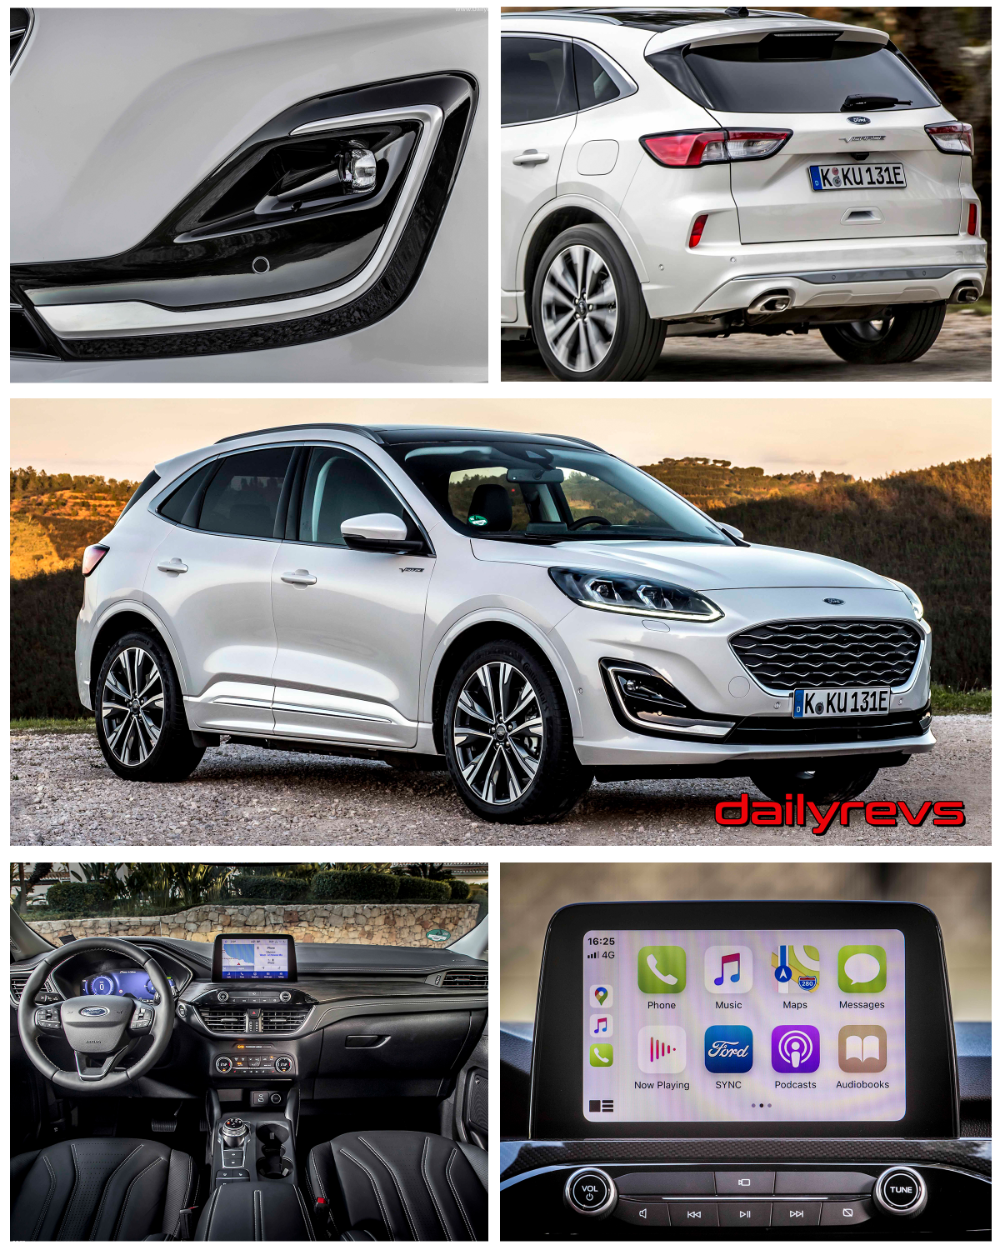 2020 Ford Kuga Vignale PHEV in 2020 Ford